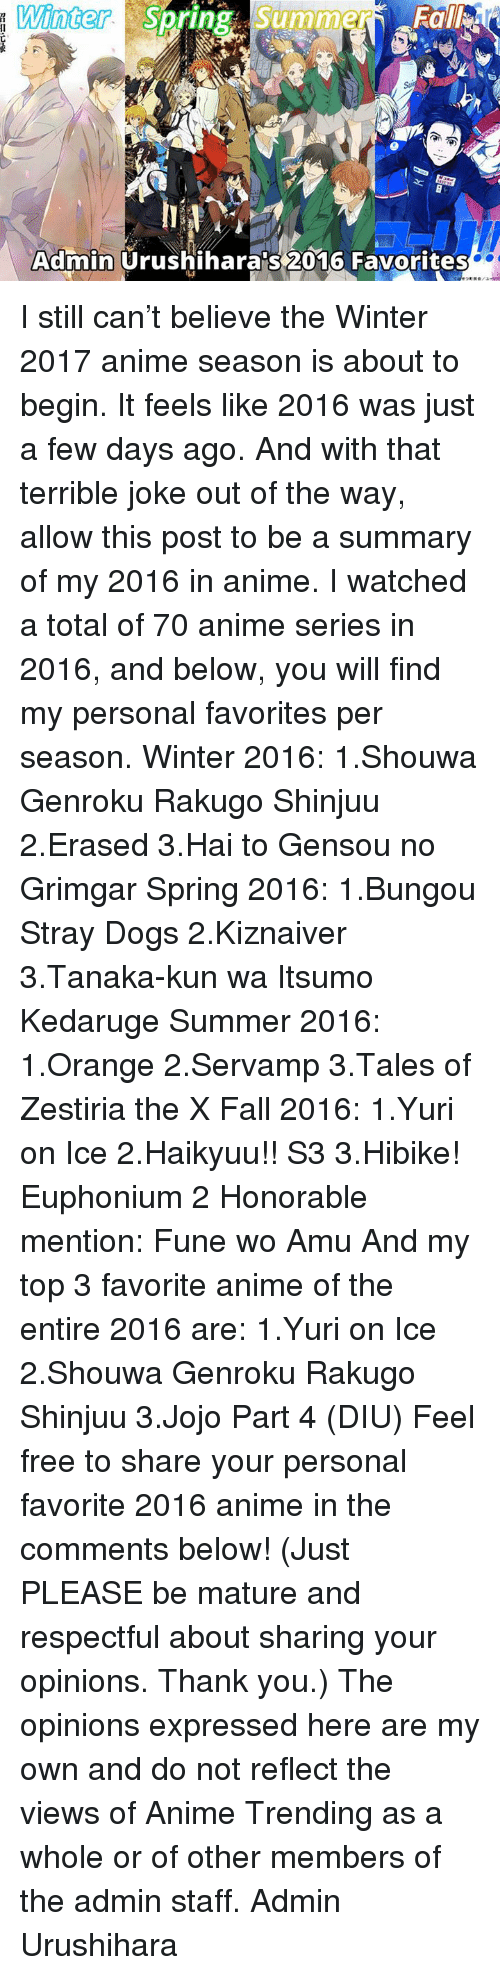 Memes, Jojo, and Spring: Winter  Su  Summer  Spring Admin  Urushiharaps 2016 Favorites I still can't believe the Winter 2017 anime season is about to begin. It feels like 2016 was just a few days ago.  And with that terrible joke out of the way, allow this post to be a summary of my 2016 in anime. I watched a total of 70 anime series in 2016, and below, you will find my personal favorites per season.  Winter 2016: 1.Shouwa Genroku Rakugo Shinjuu 2.Erased 3.Hai to Gensou no Grimgar  Spring 2016: 1.Bungou Stray Dogs 2.Kiznaiver 3.Tanaka-kun wa Itsumo Kedaruge  Summer 2016: 1.Orange 2.Servamp 3.Tales of Zestiria the X  Fall 2016: 1.Yuri on Ice 2.Haikyuu!! S3 3.Hibike! Euphonium 2 Honorable mention: Fune wo Amu  And my top 3 favorite anime of the entire 2016 are: 1.Yuri on Ice 2.Shouwa Genroku Rakugo Shinjuu 3.Jojo Part 4 (DIU)  Feel free to share your personal favorite 2016 anime in the comments below! (Just PLEASE be mature and respectful about sharing your opinions. Thank you.)  The opinions expressed here are my own and do not reflect the views of Anime Trending as a whole or of other members of the admin staff.  Admin Urushihara